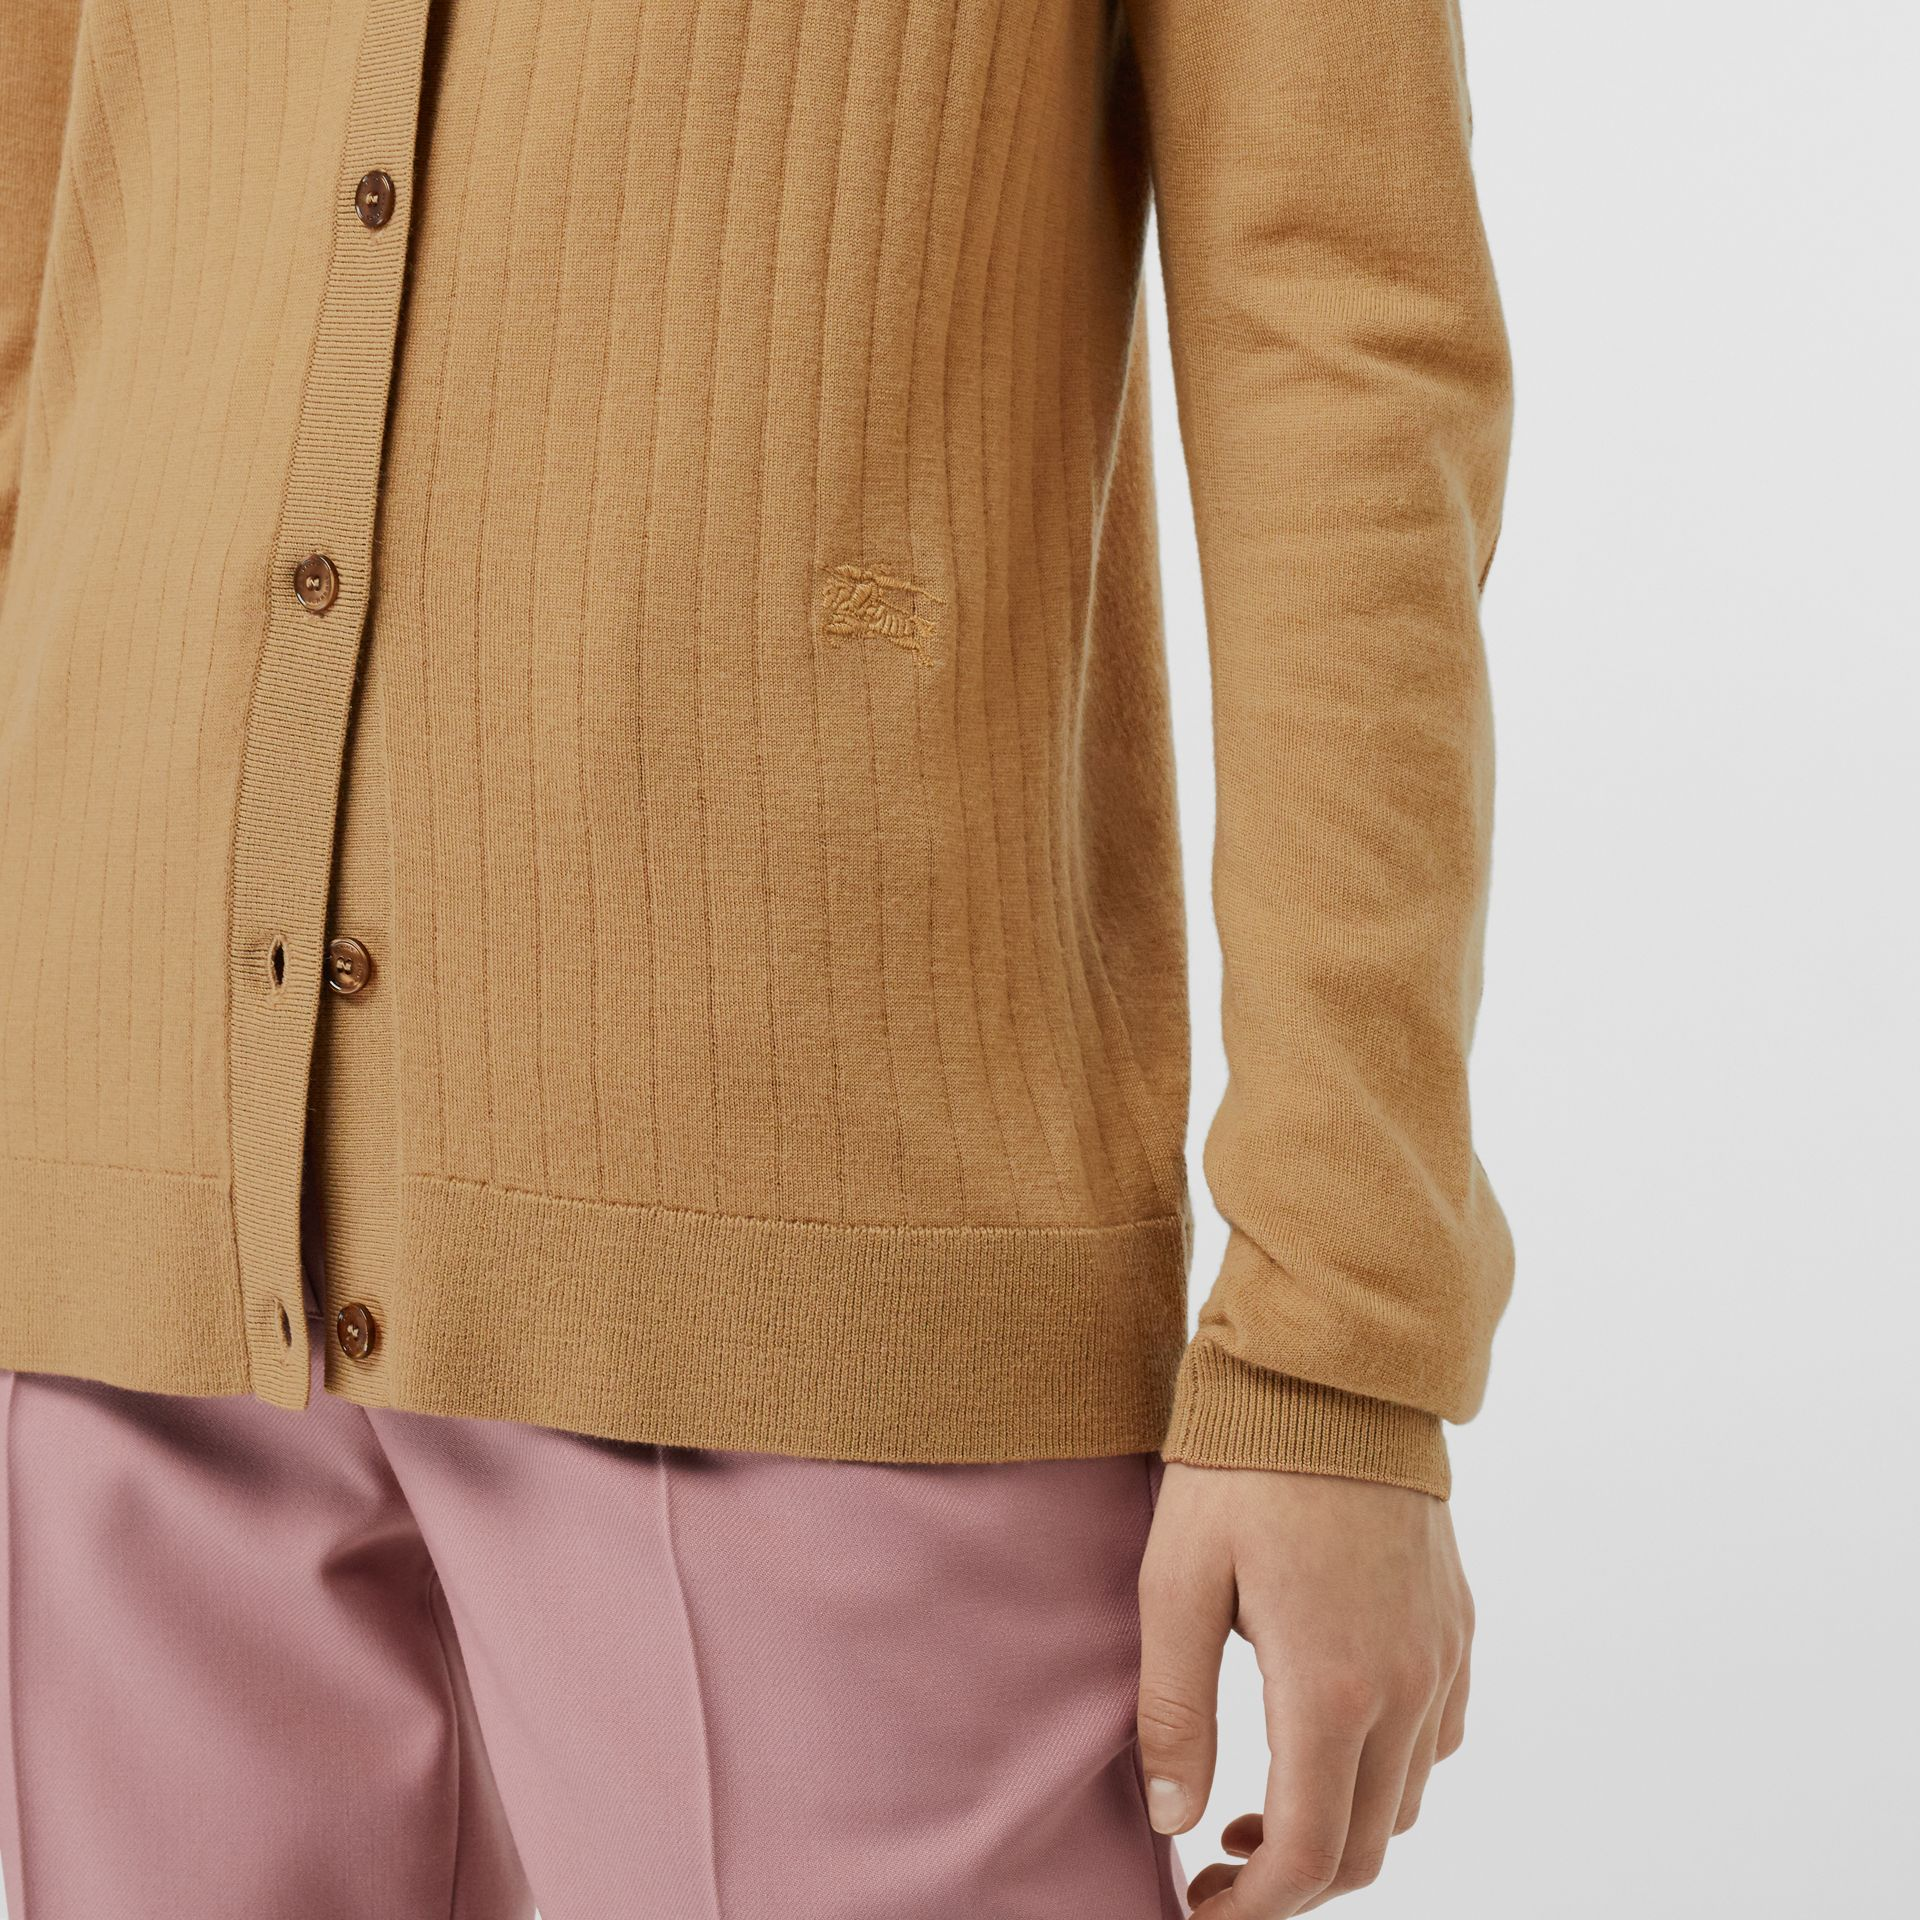 Rib Knit Cashmere Cardigan in Camel - Women | Burberry United Kingdom - gallery image 5